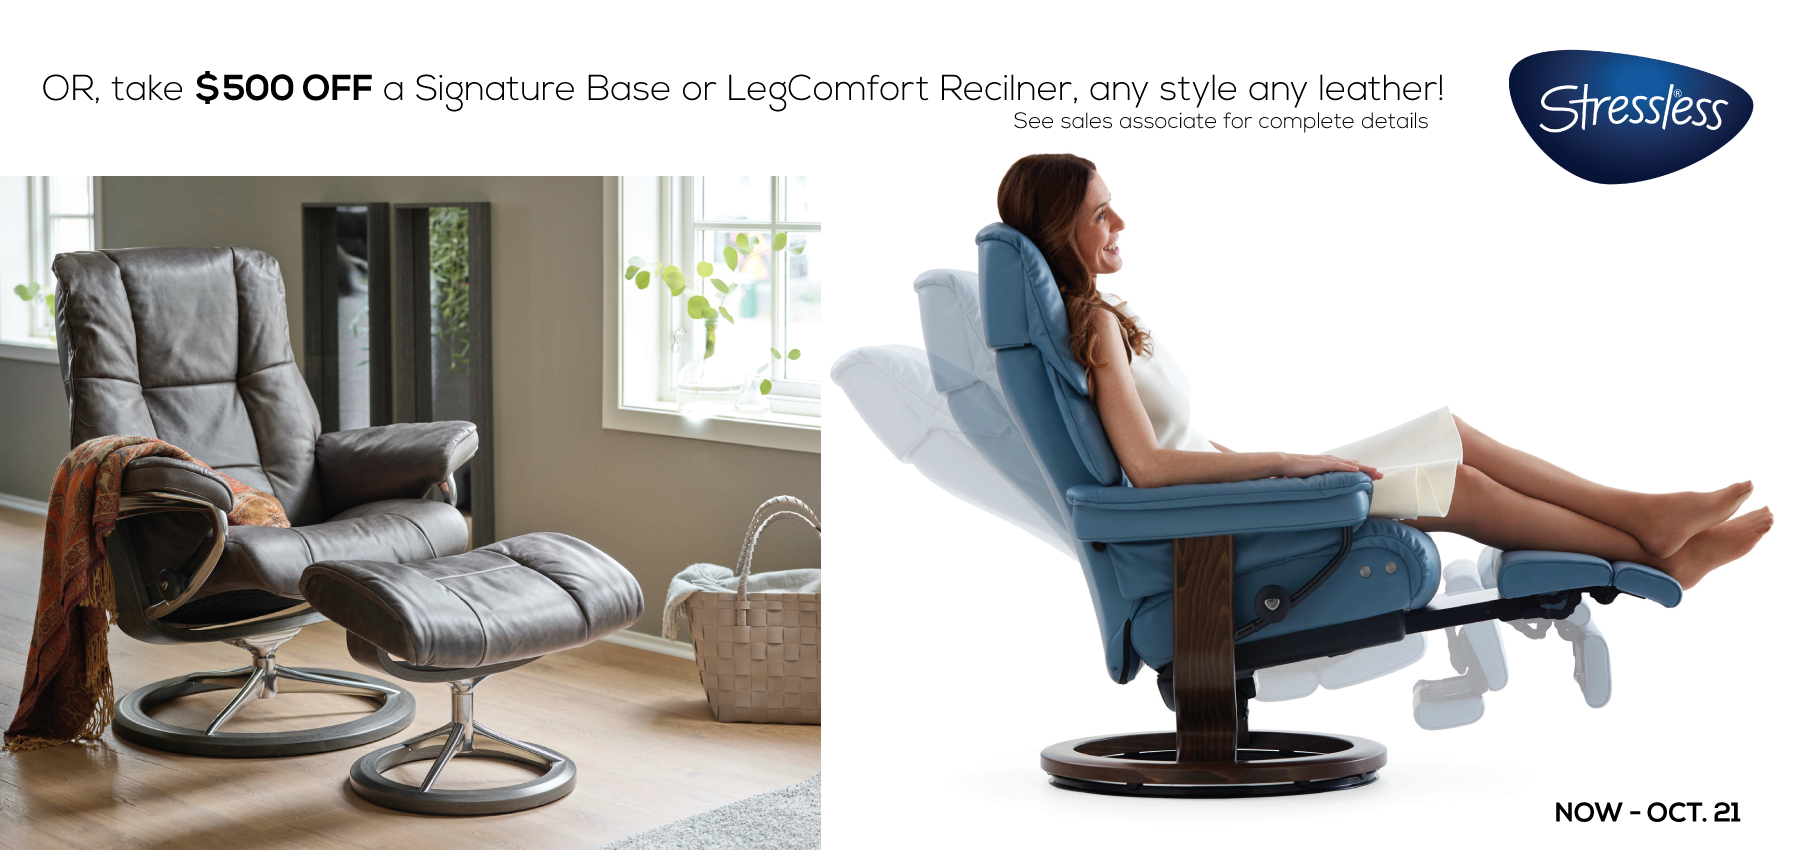 Signature Base or LegComfort Recliner by Danish Inspirations